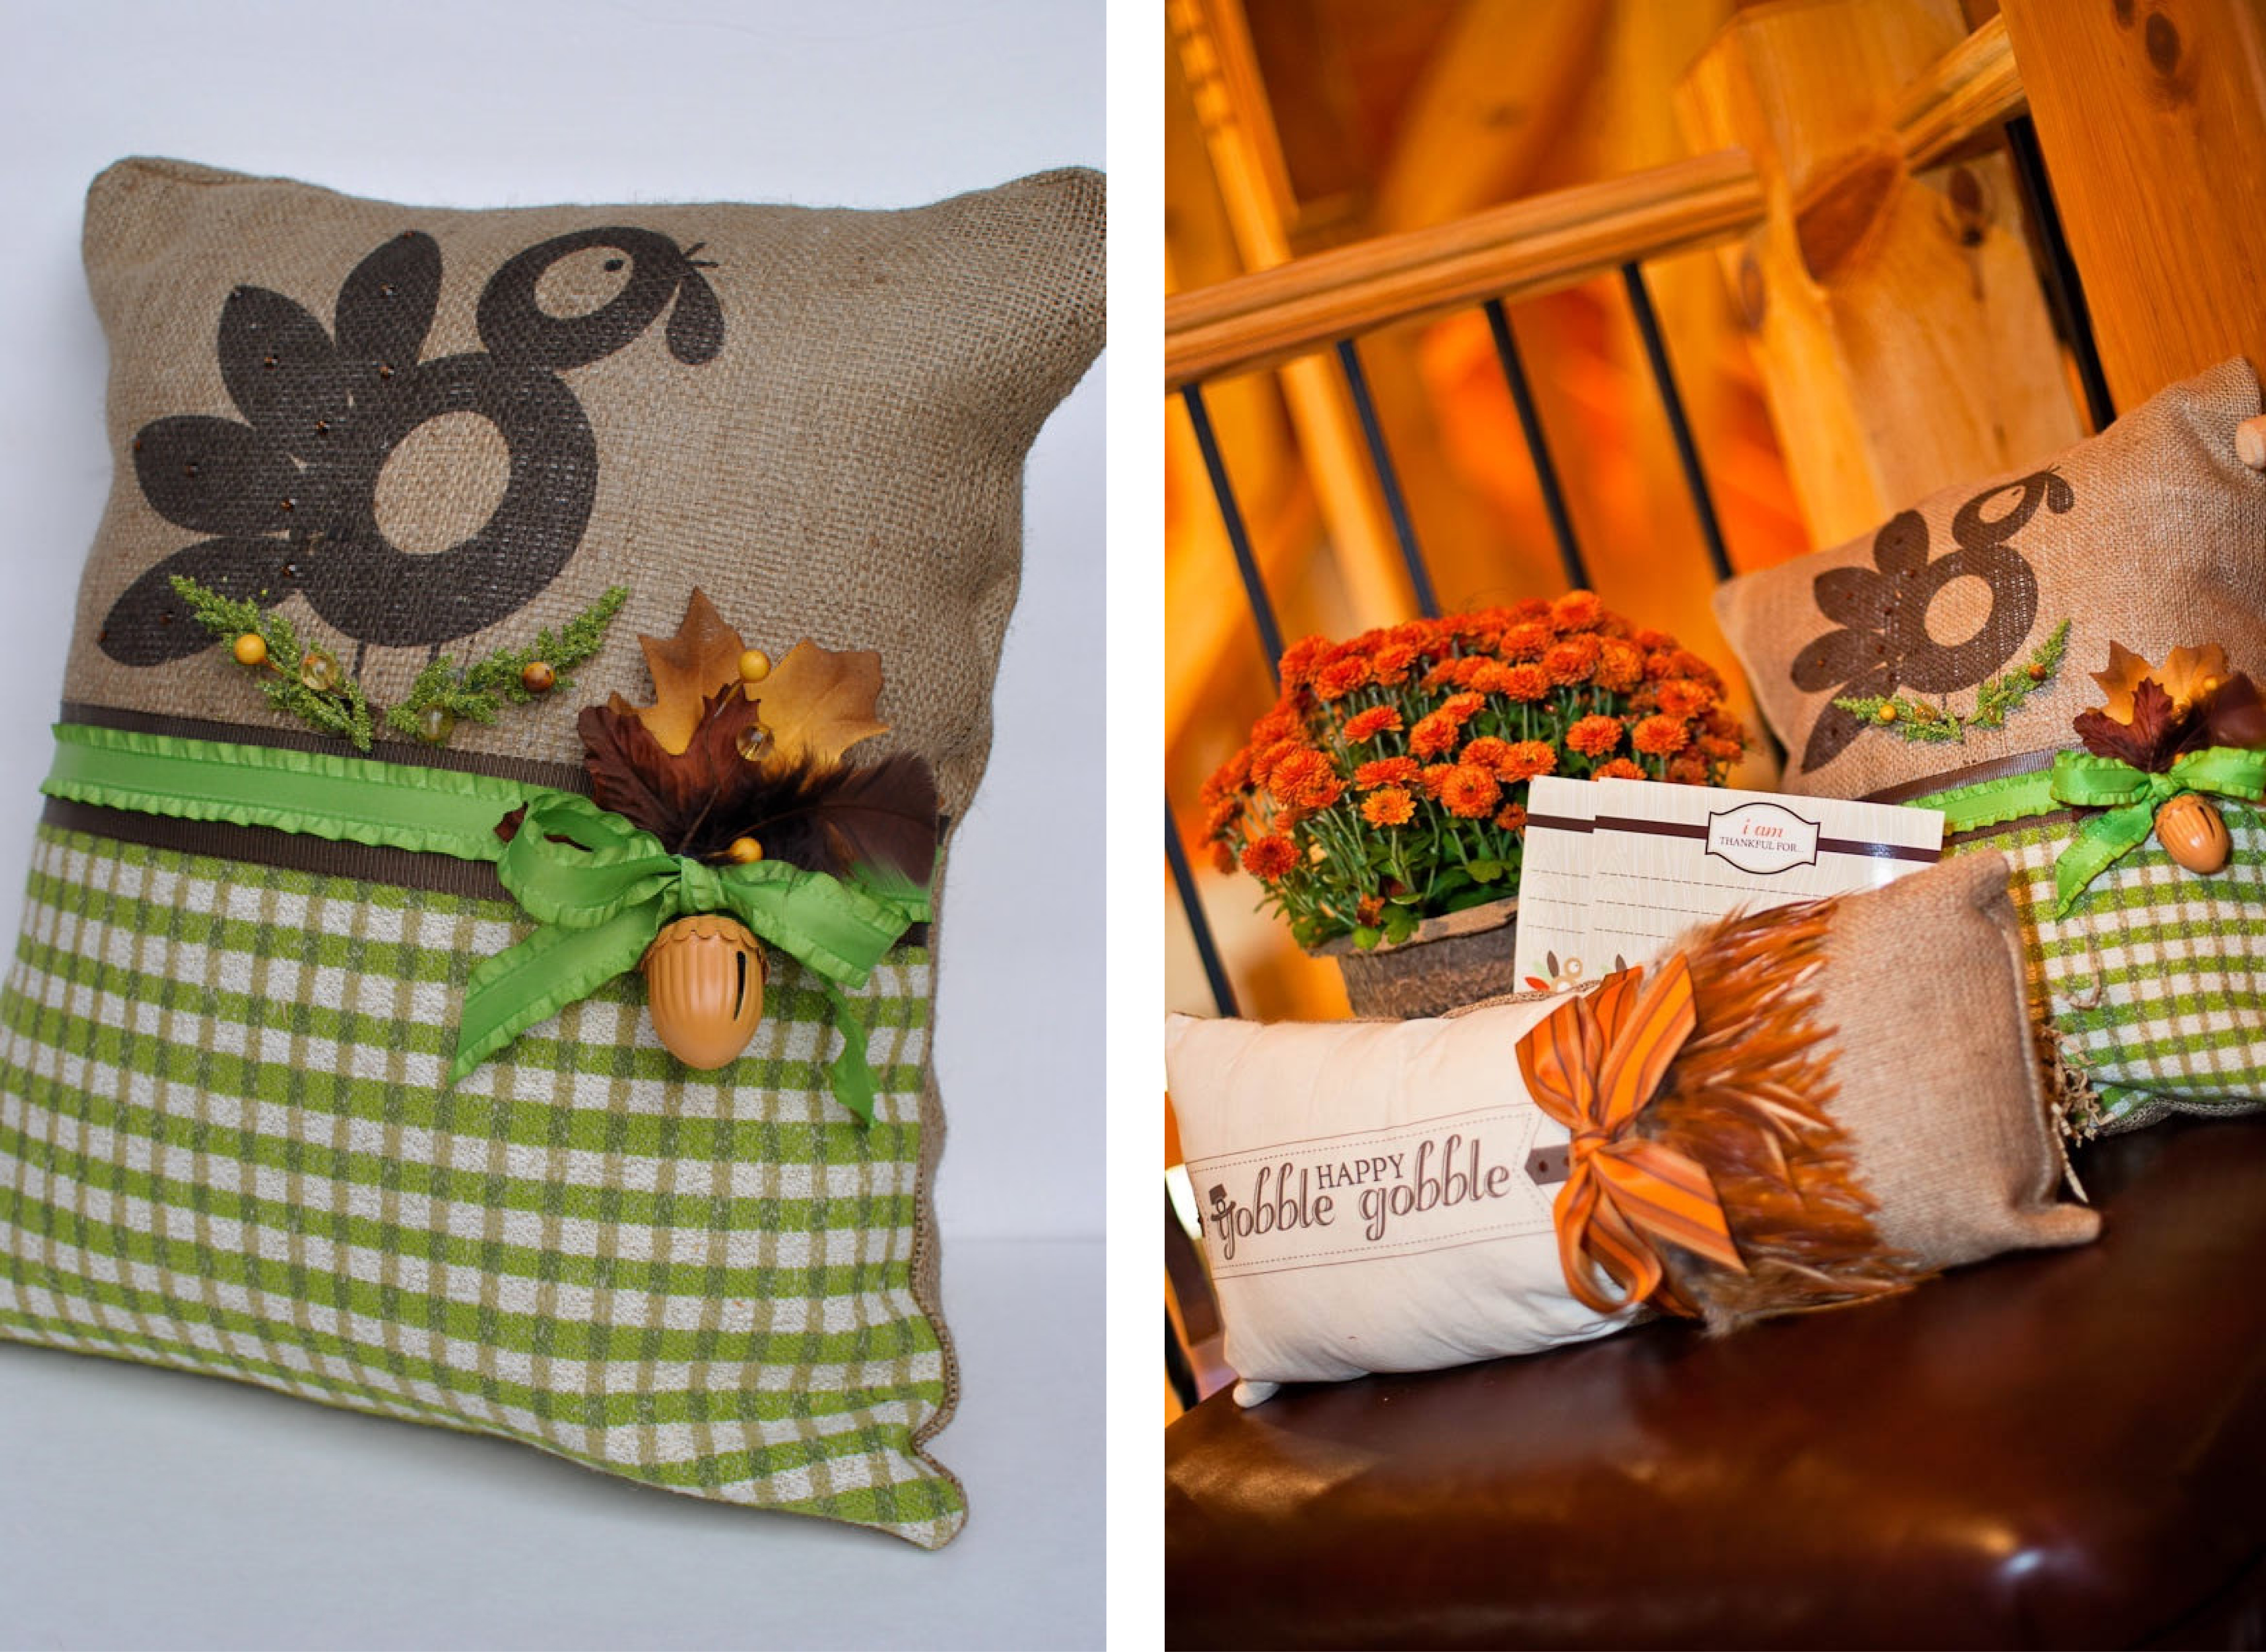 tutorial brain friends pumpkin diy your just pillow the learn basic in taught shot all to quilt pillows they make have pm and time had now screen who steps thanksgiving turkey only skills patterns i their sewing own at